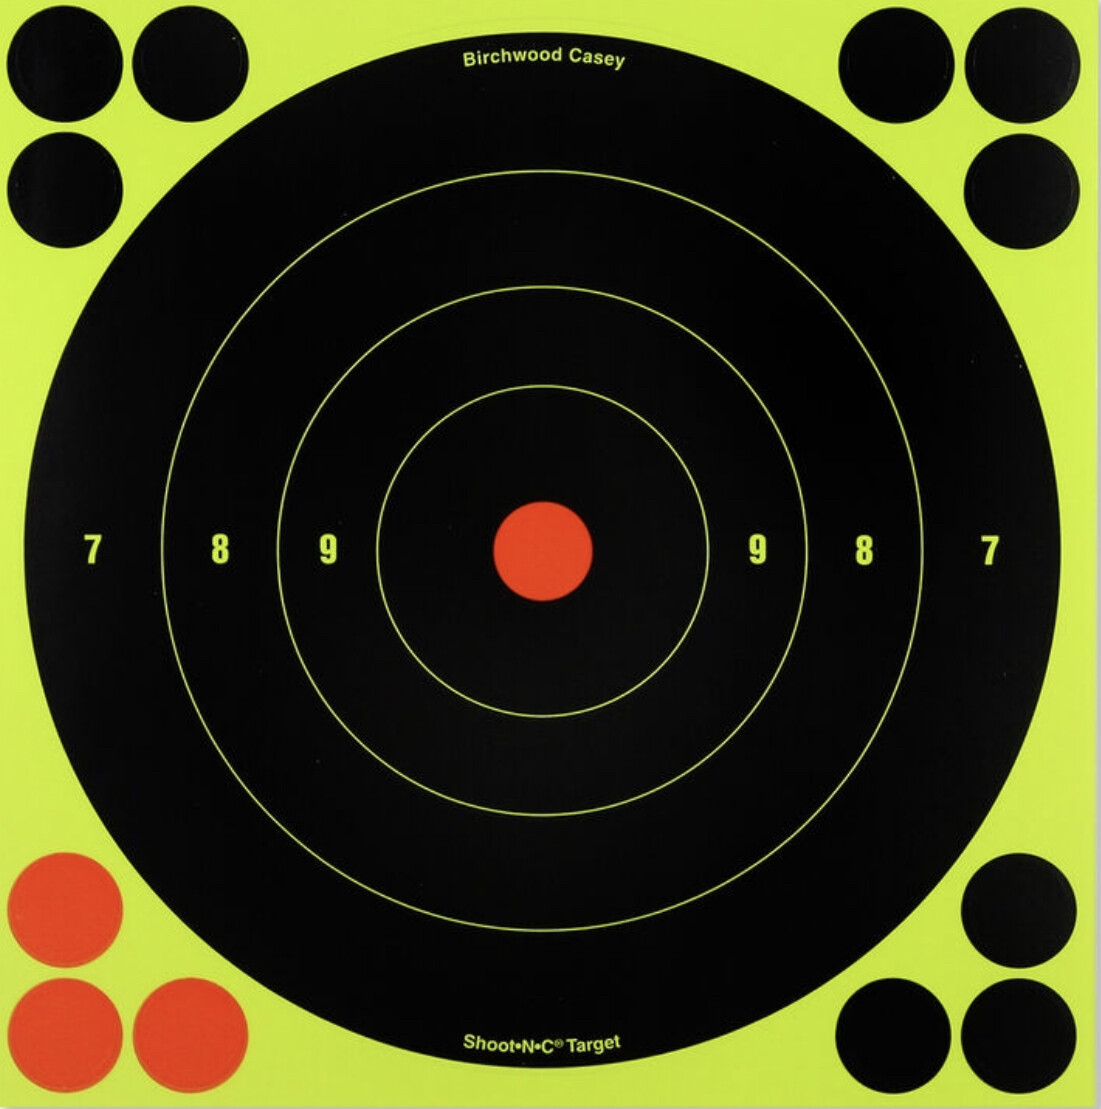 "Birchwood Casey Shoot-N-C Targets 8"" Round Bull's Eye"